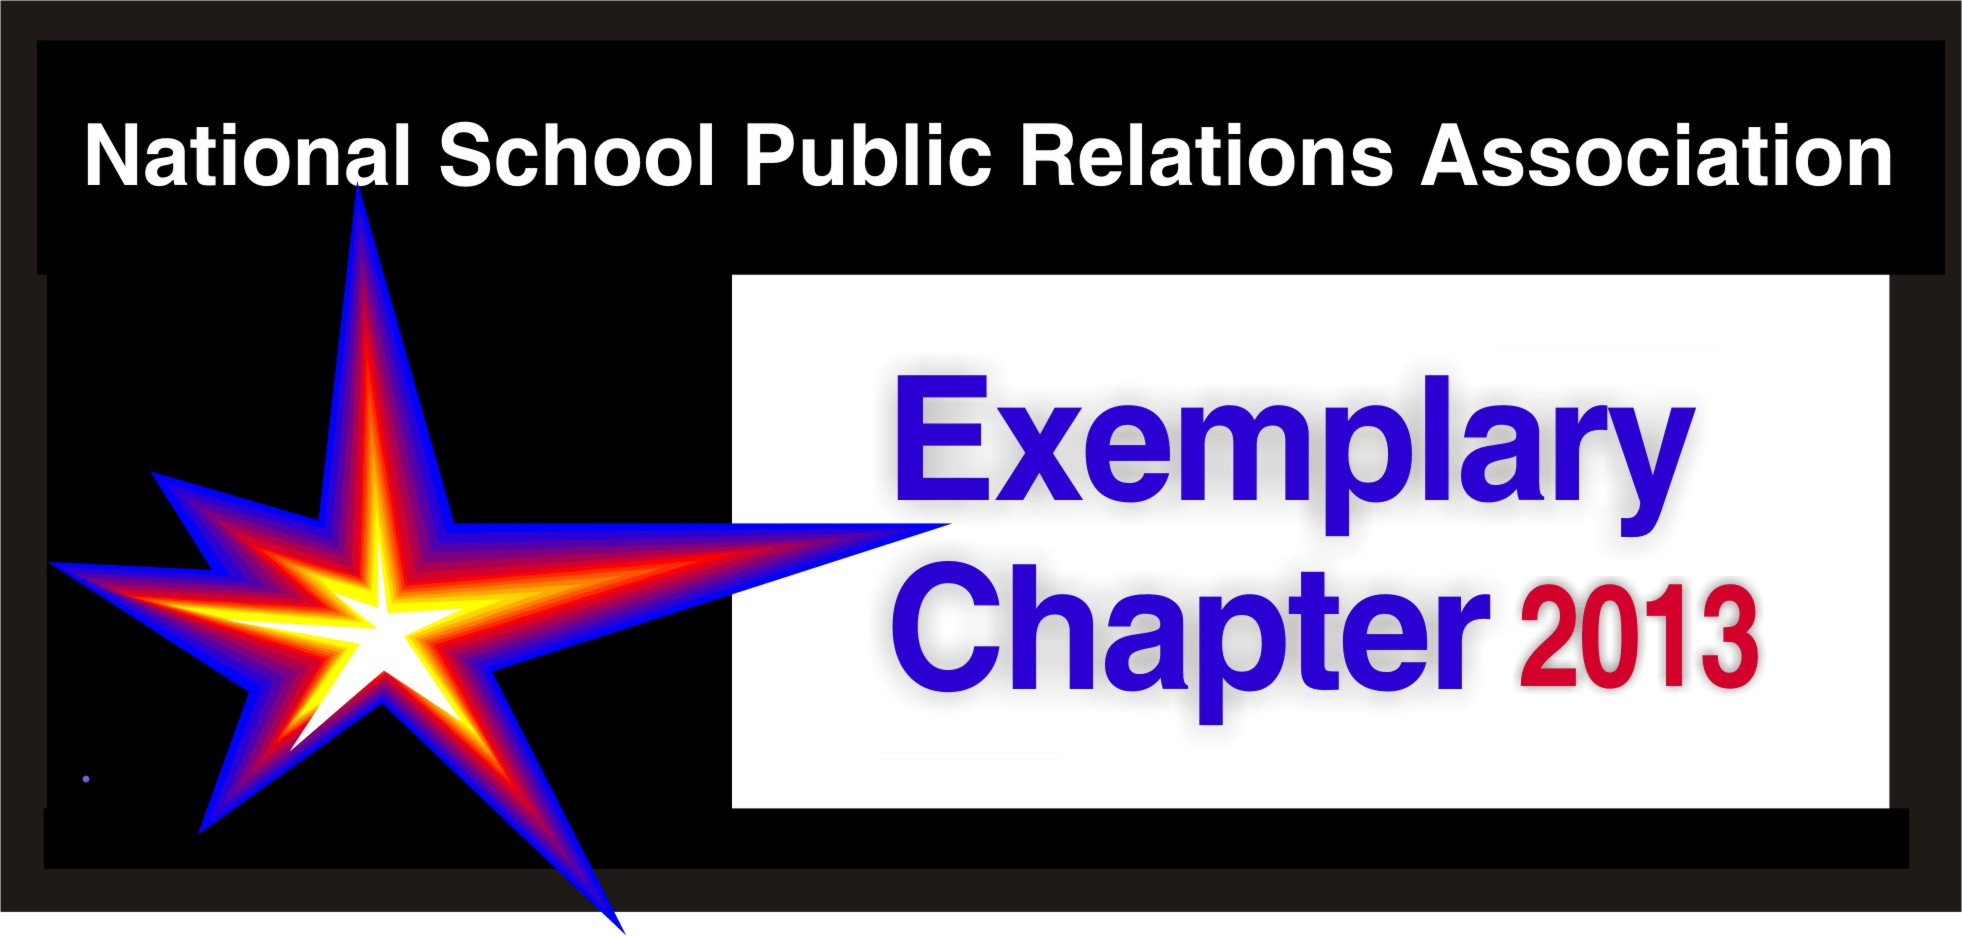 exemplary chapter logo